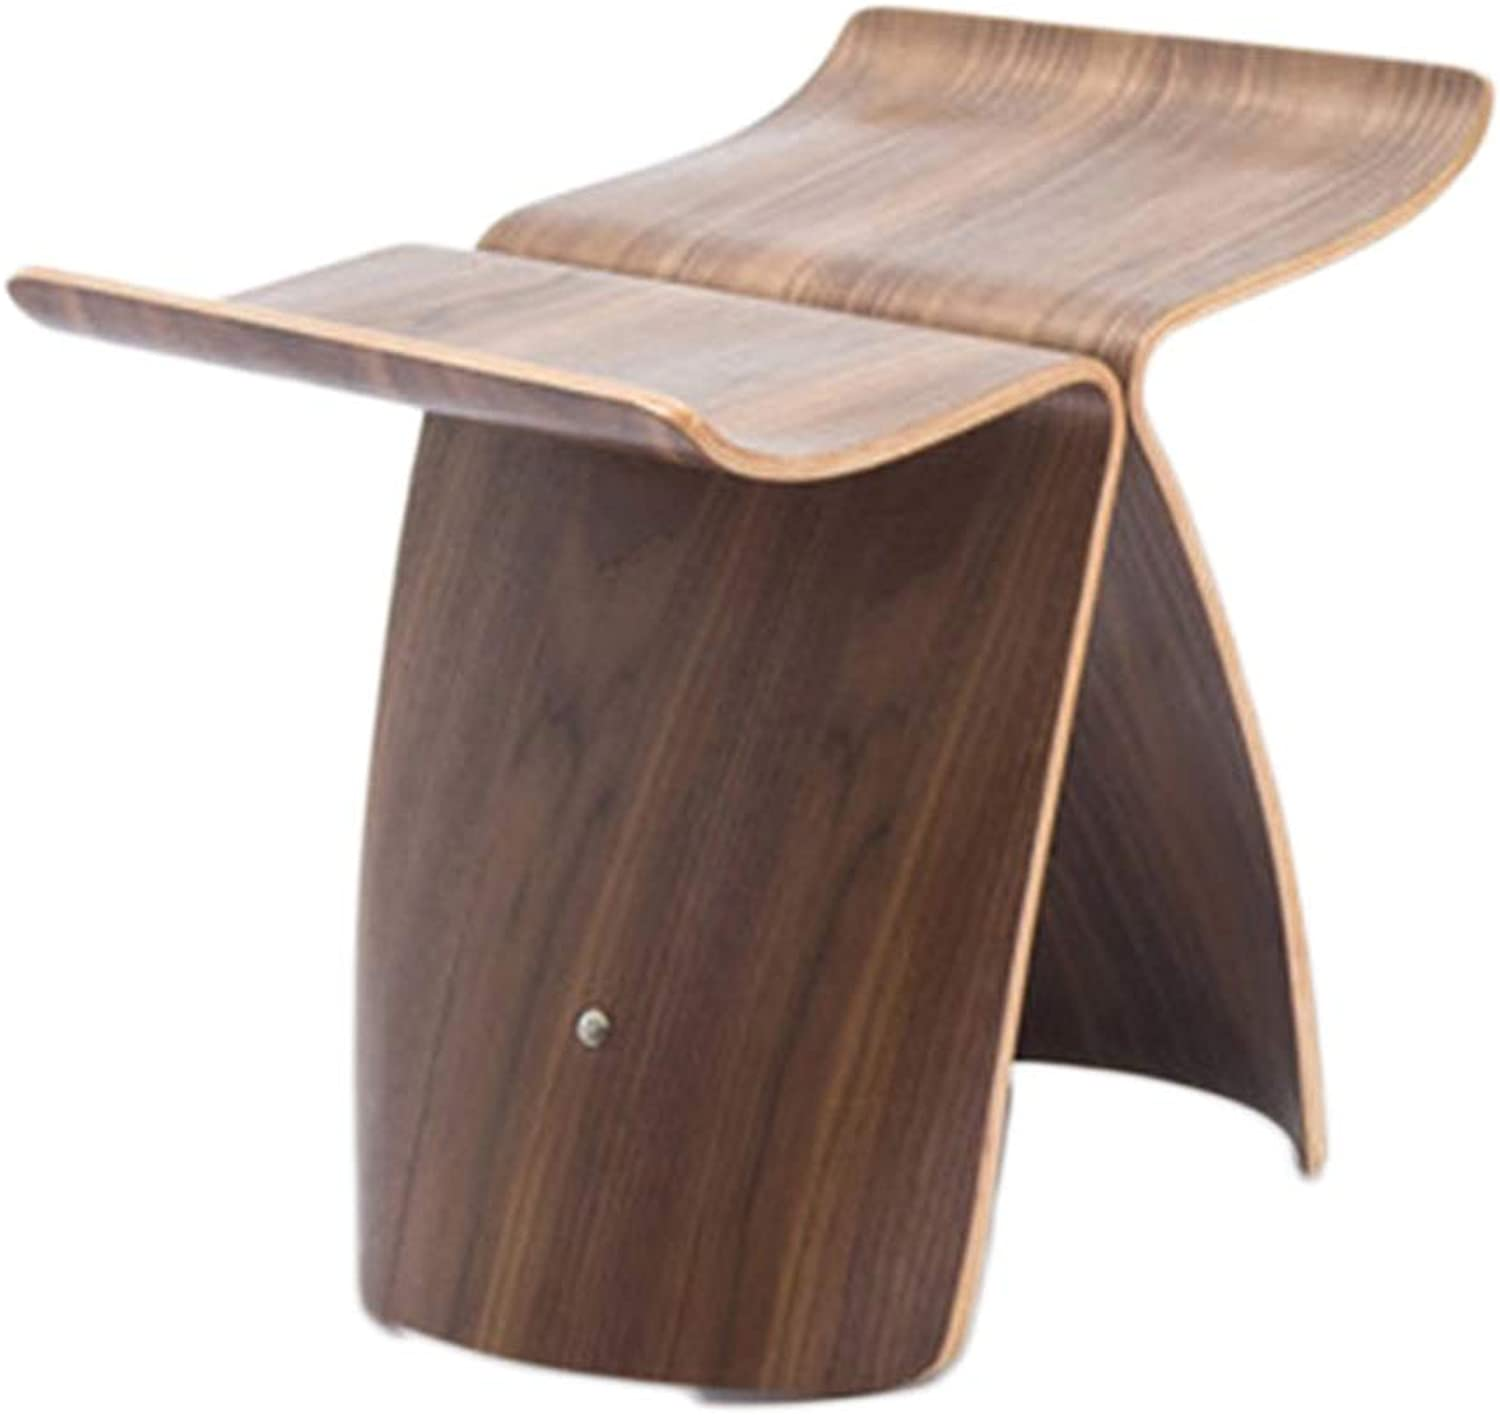 Stools Stool Low Stool Living Room Butterfly Stool Solid Wood shoes Bench Kitchen Stool Footstool Dressing Table Stool (color   B, Size   44  31  40cm)